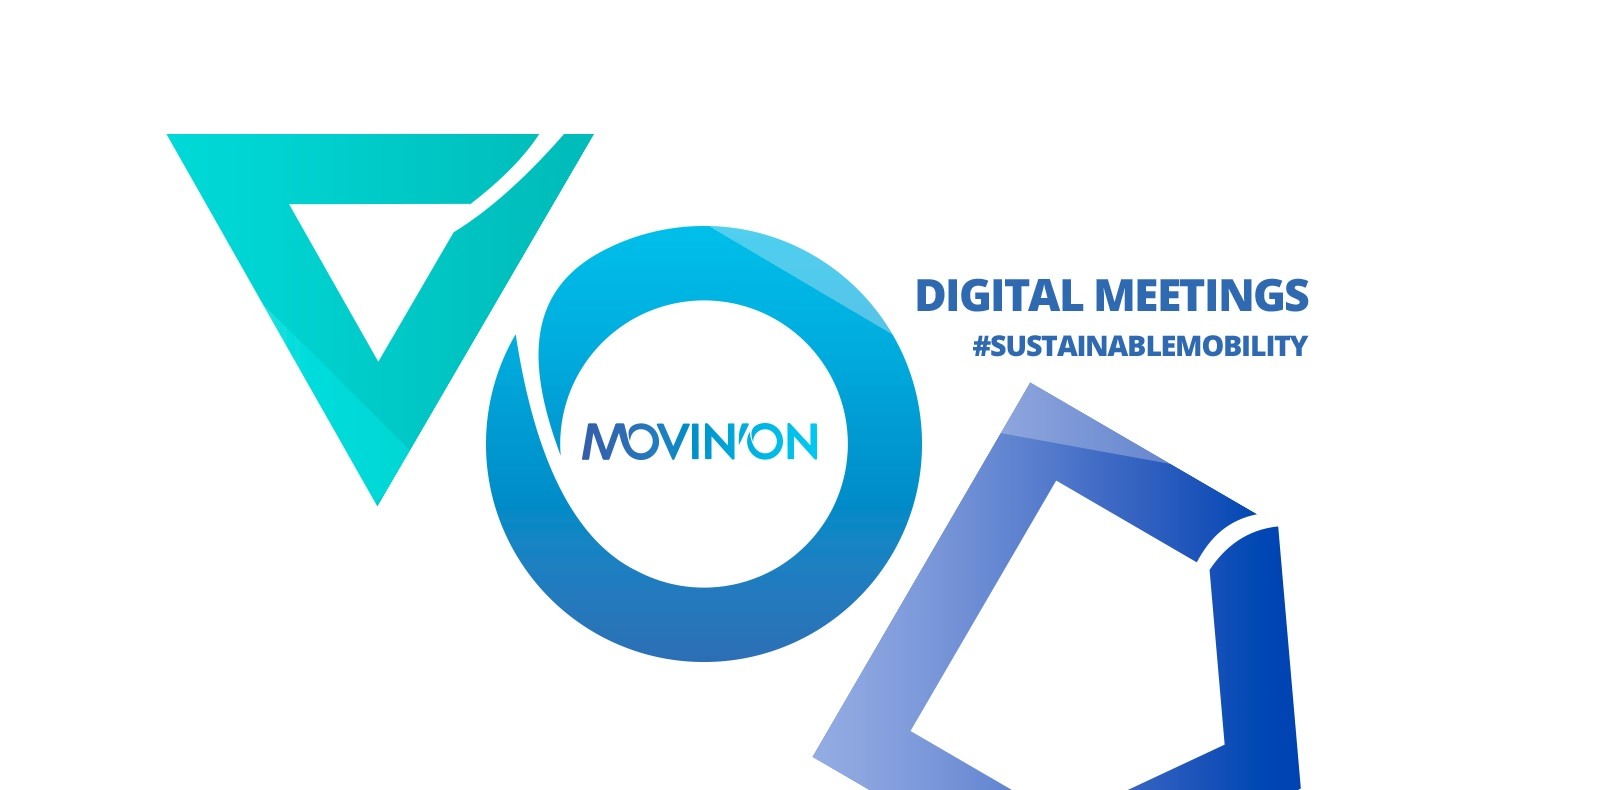 """What can we take away from """"The Movin'On Digital Meetings""""?"""